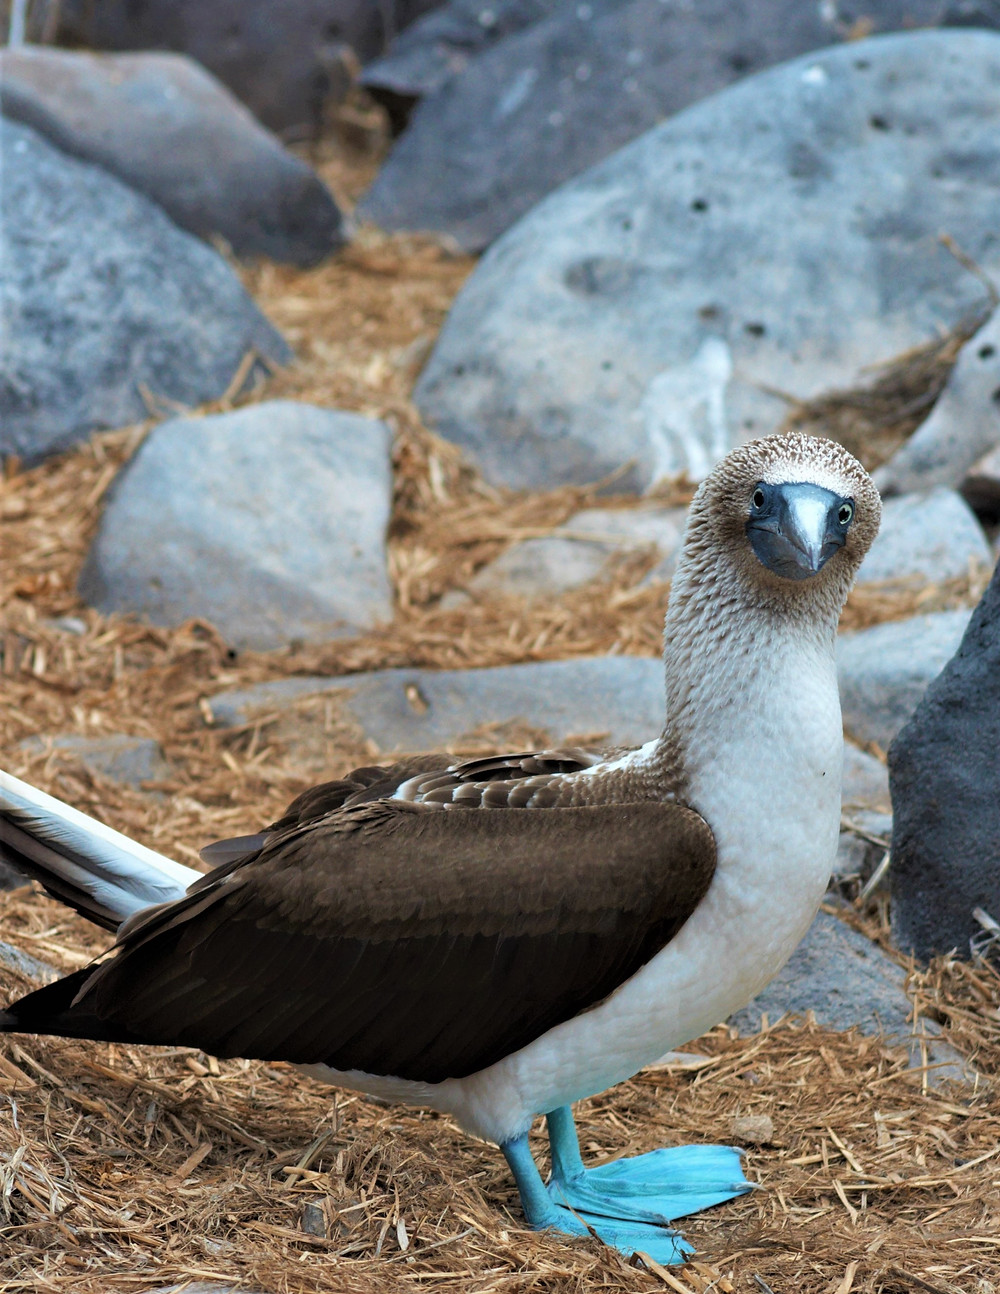 Close-up of a Blue-Footed Booby.